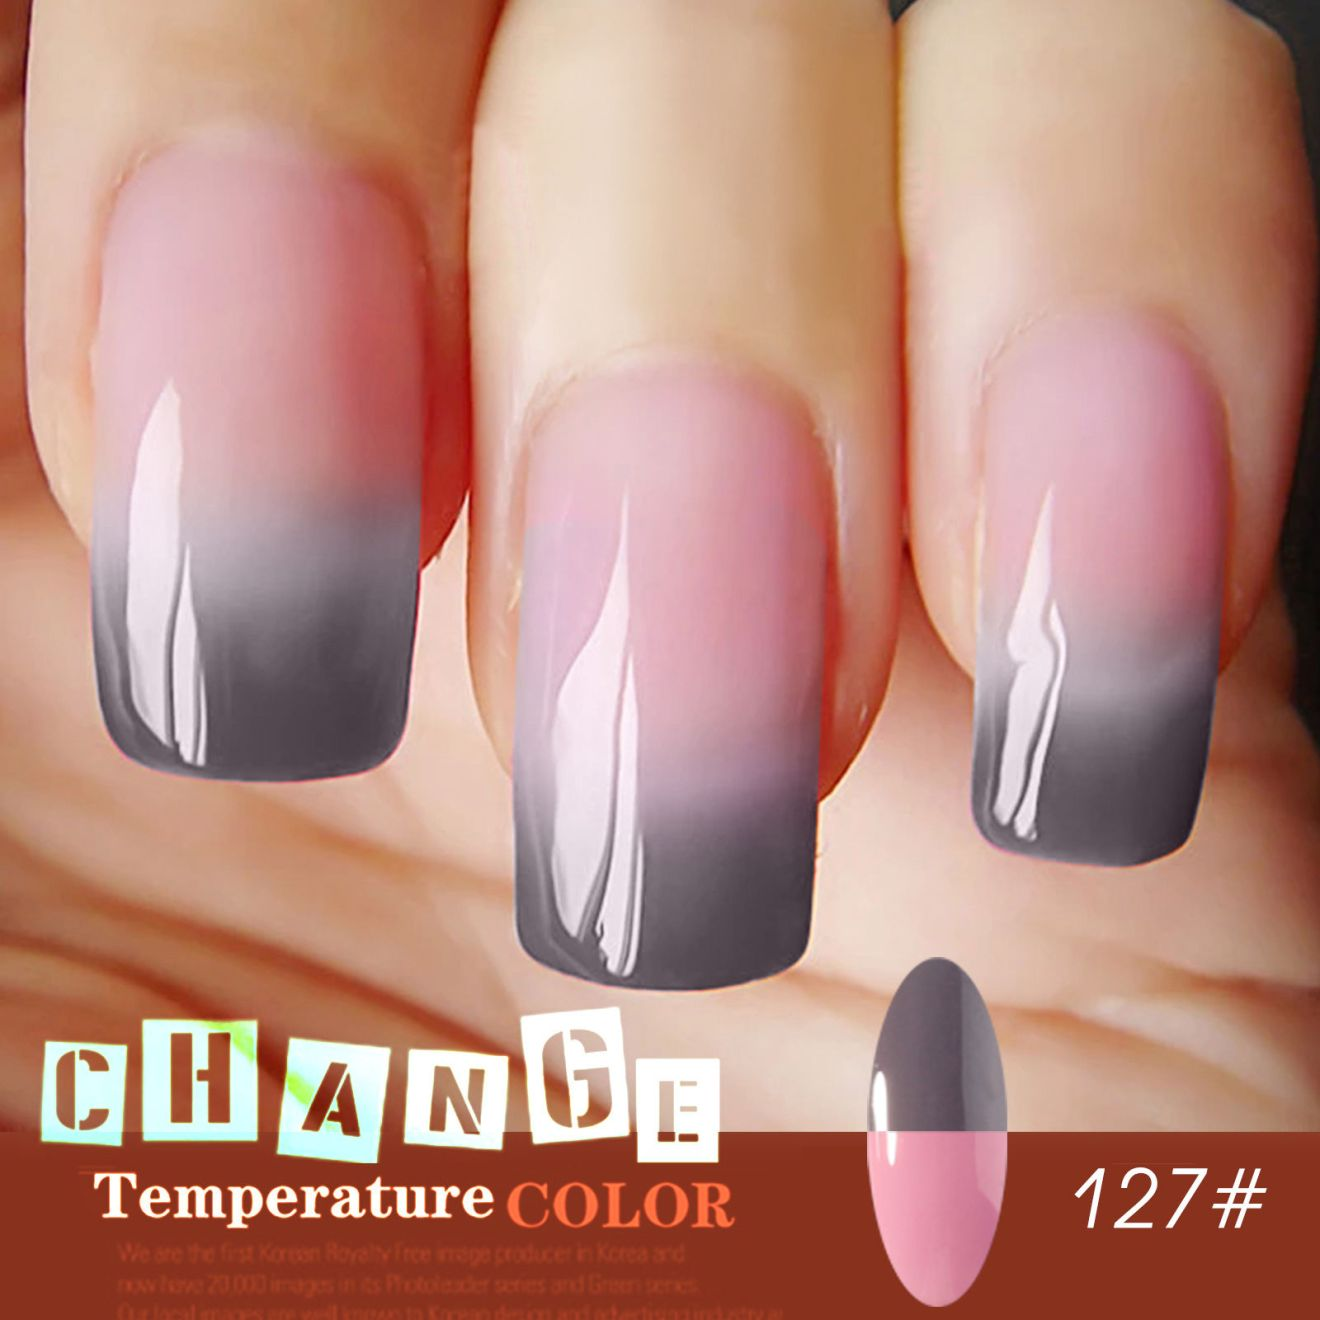 nail-art-manicure-soak-off-uv-gel-nail